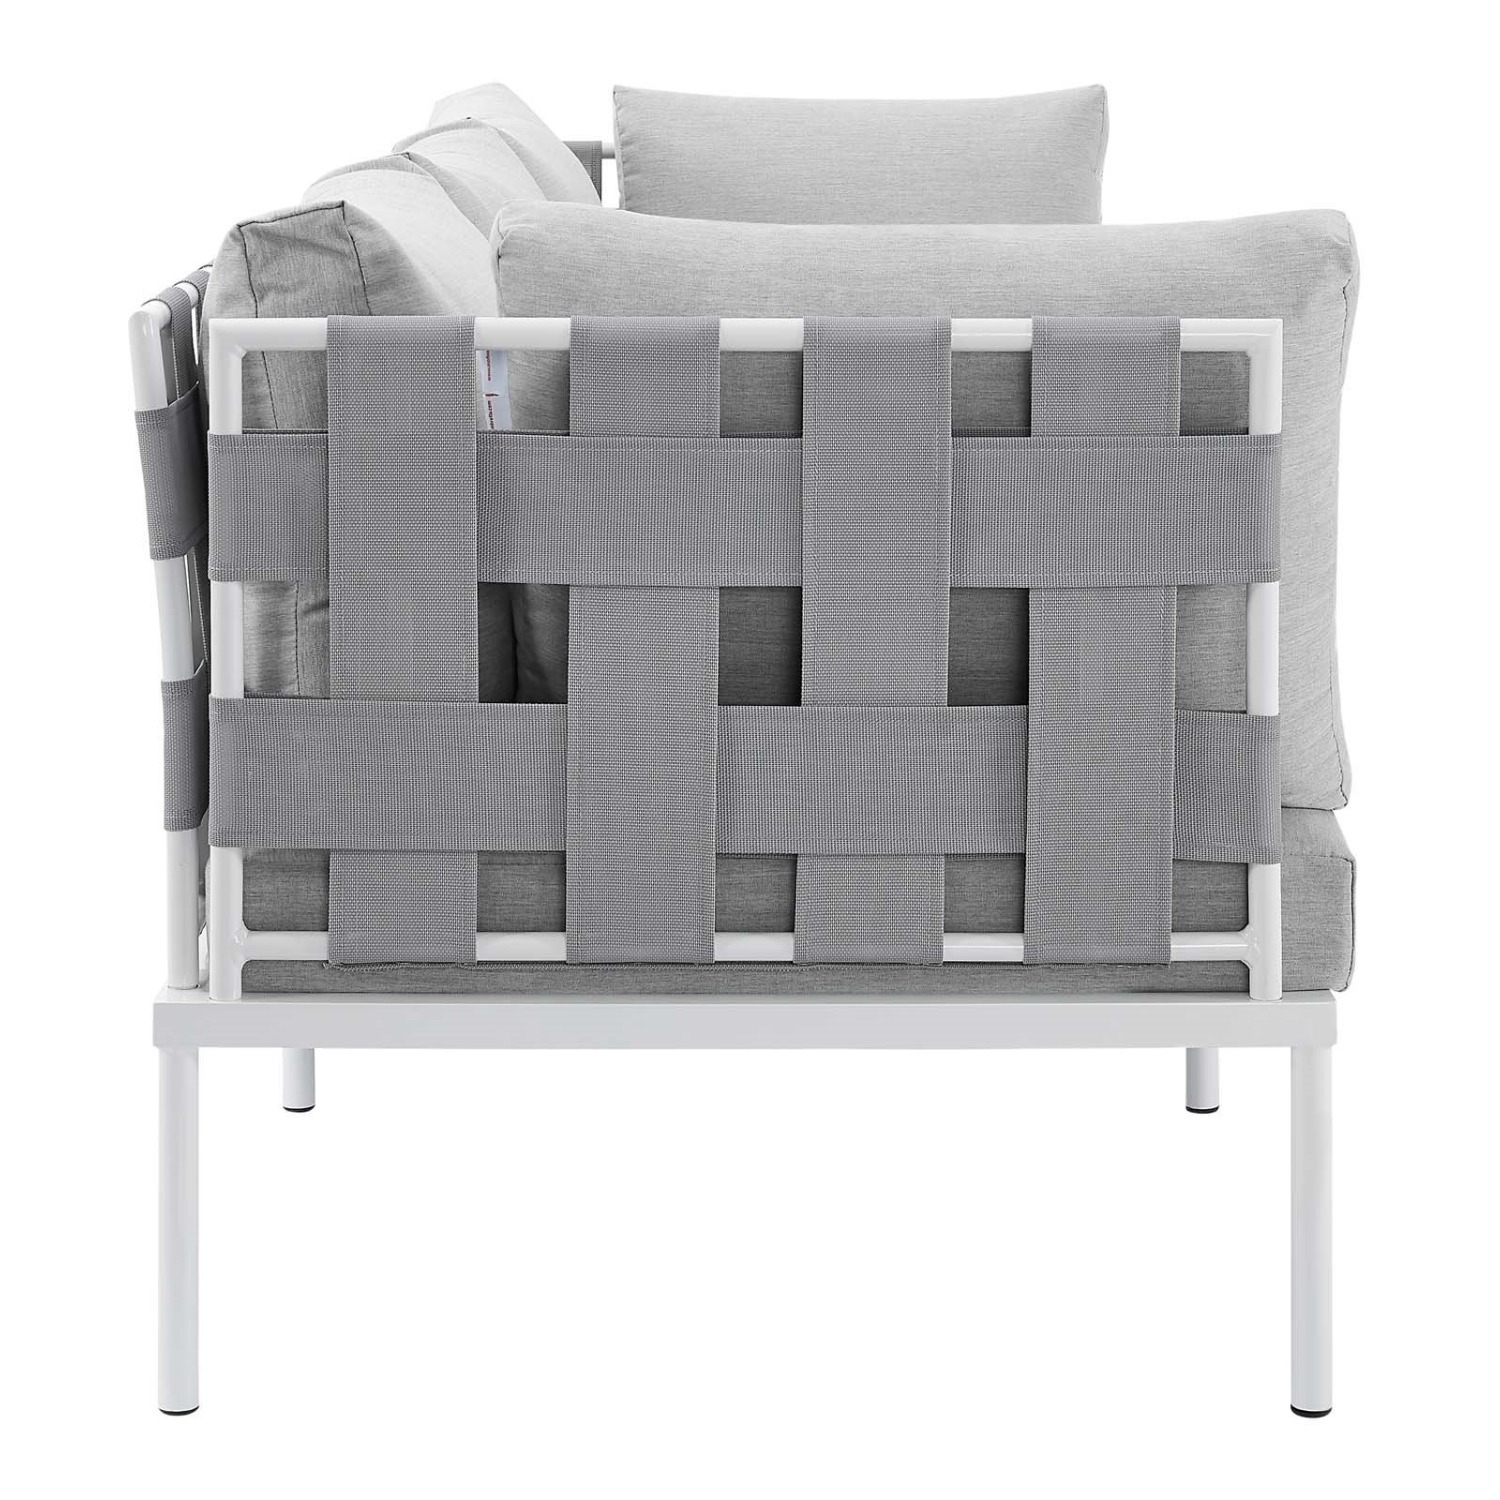 Outdoor Sofa In Gray Silk Weave & Gray Cushion - image-2